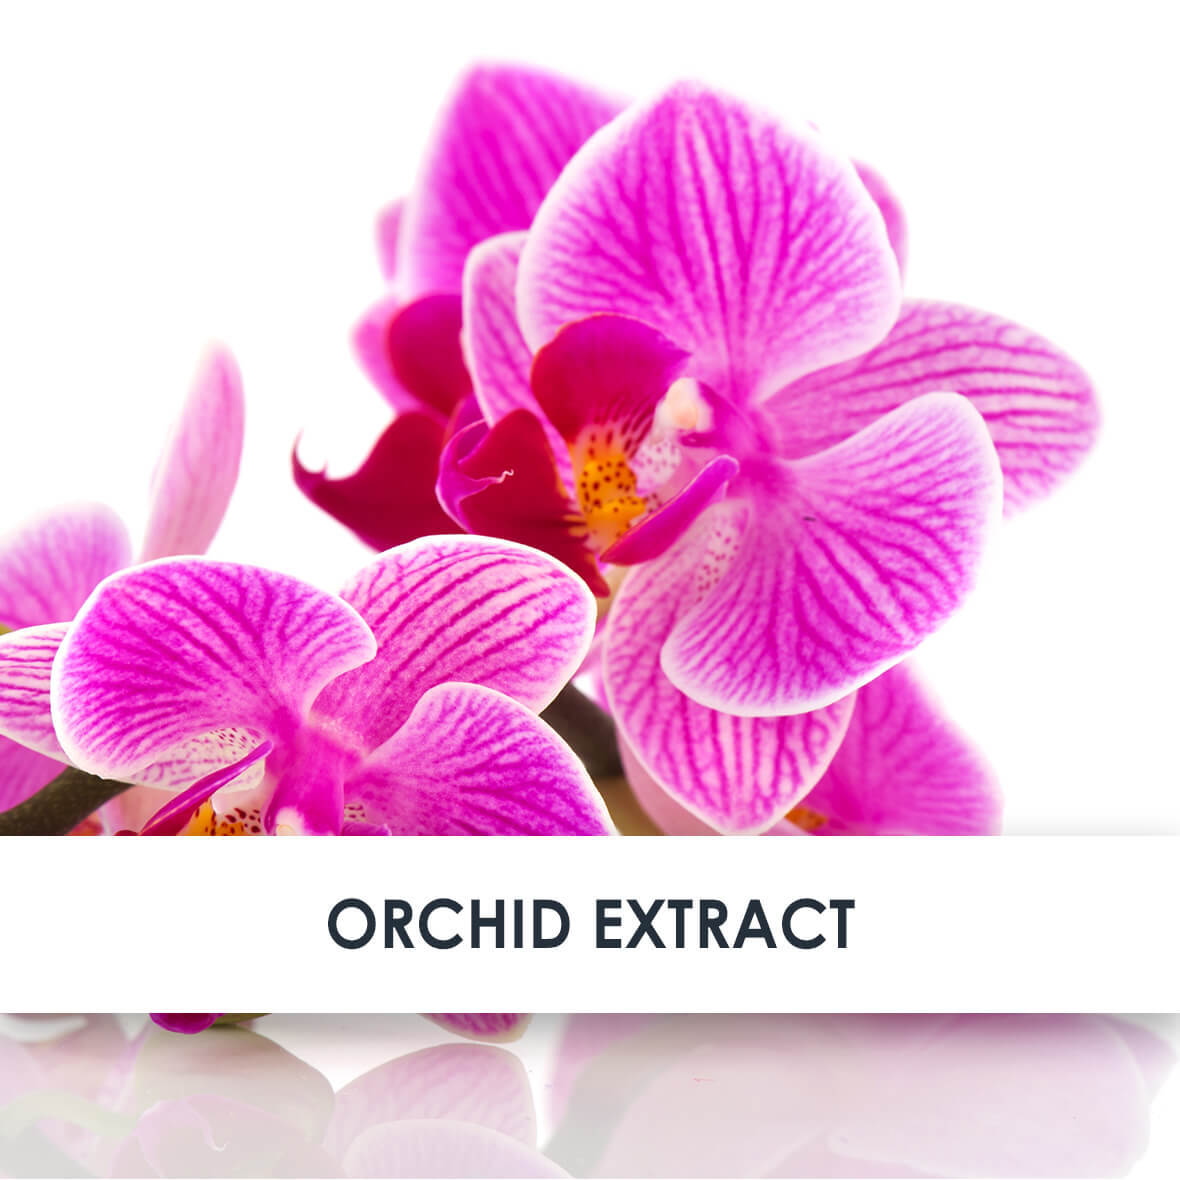 Orchid Skincare Benefits